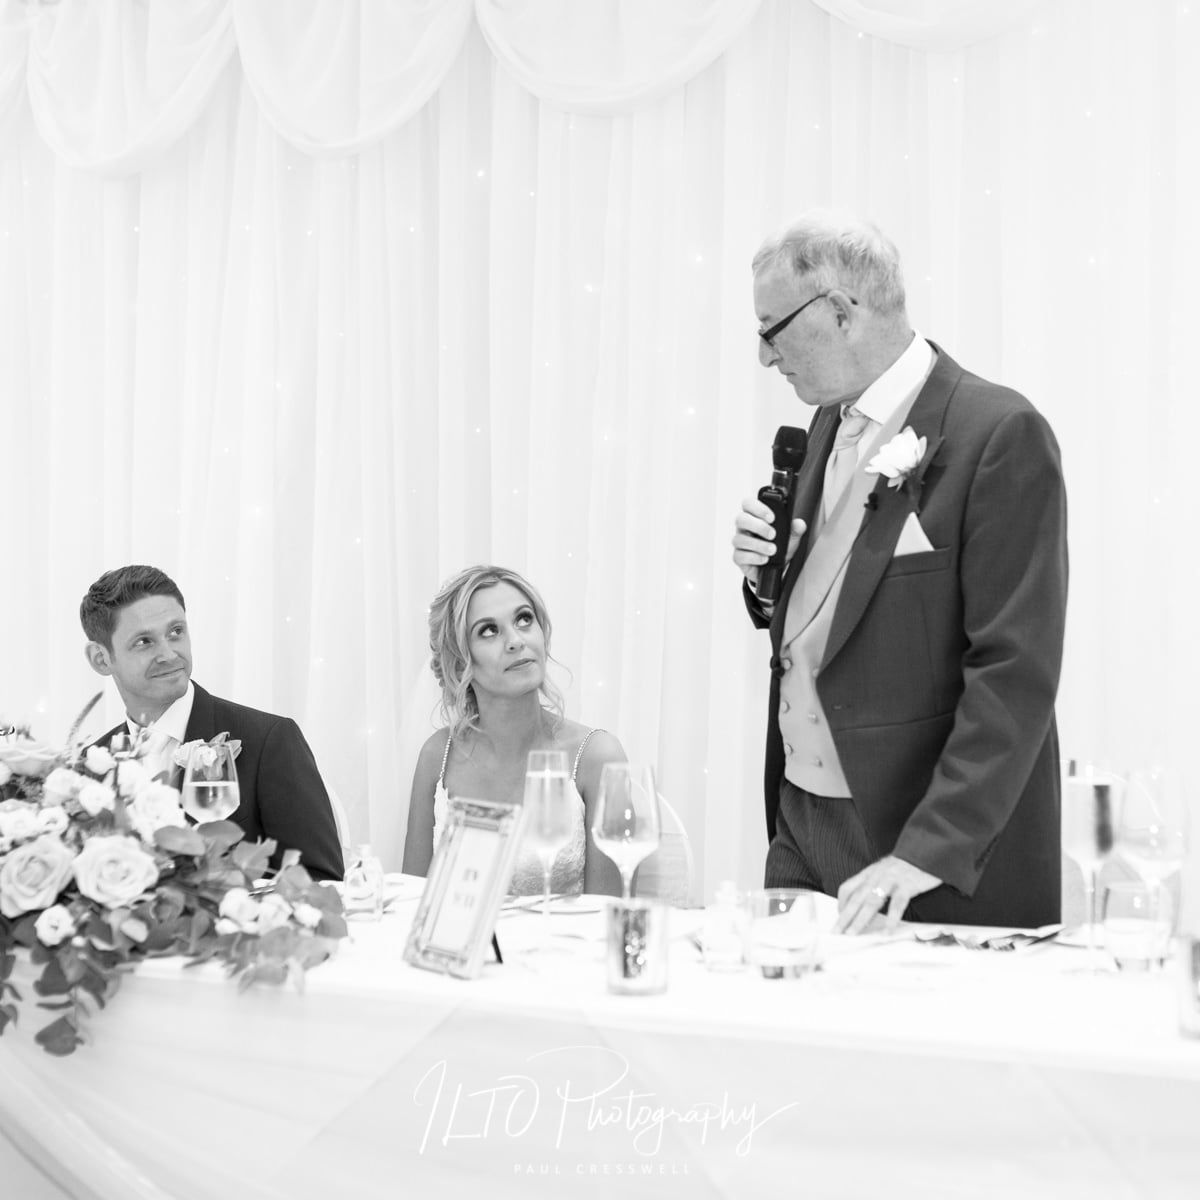 Hollins Hall wedding photographer, affordable wedding photographer yorkshire, ILTO Photography